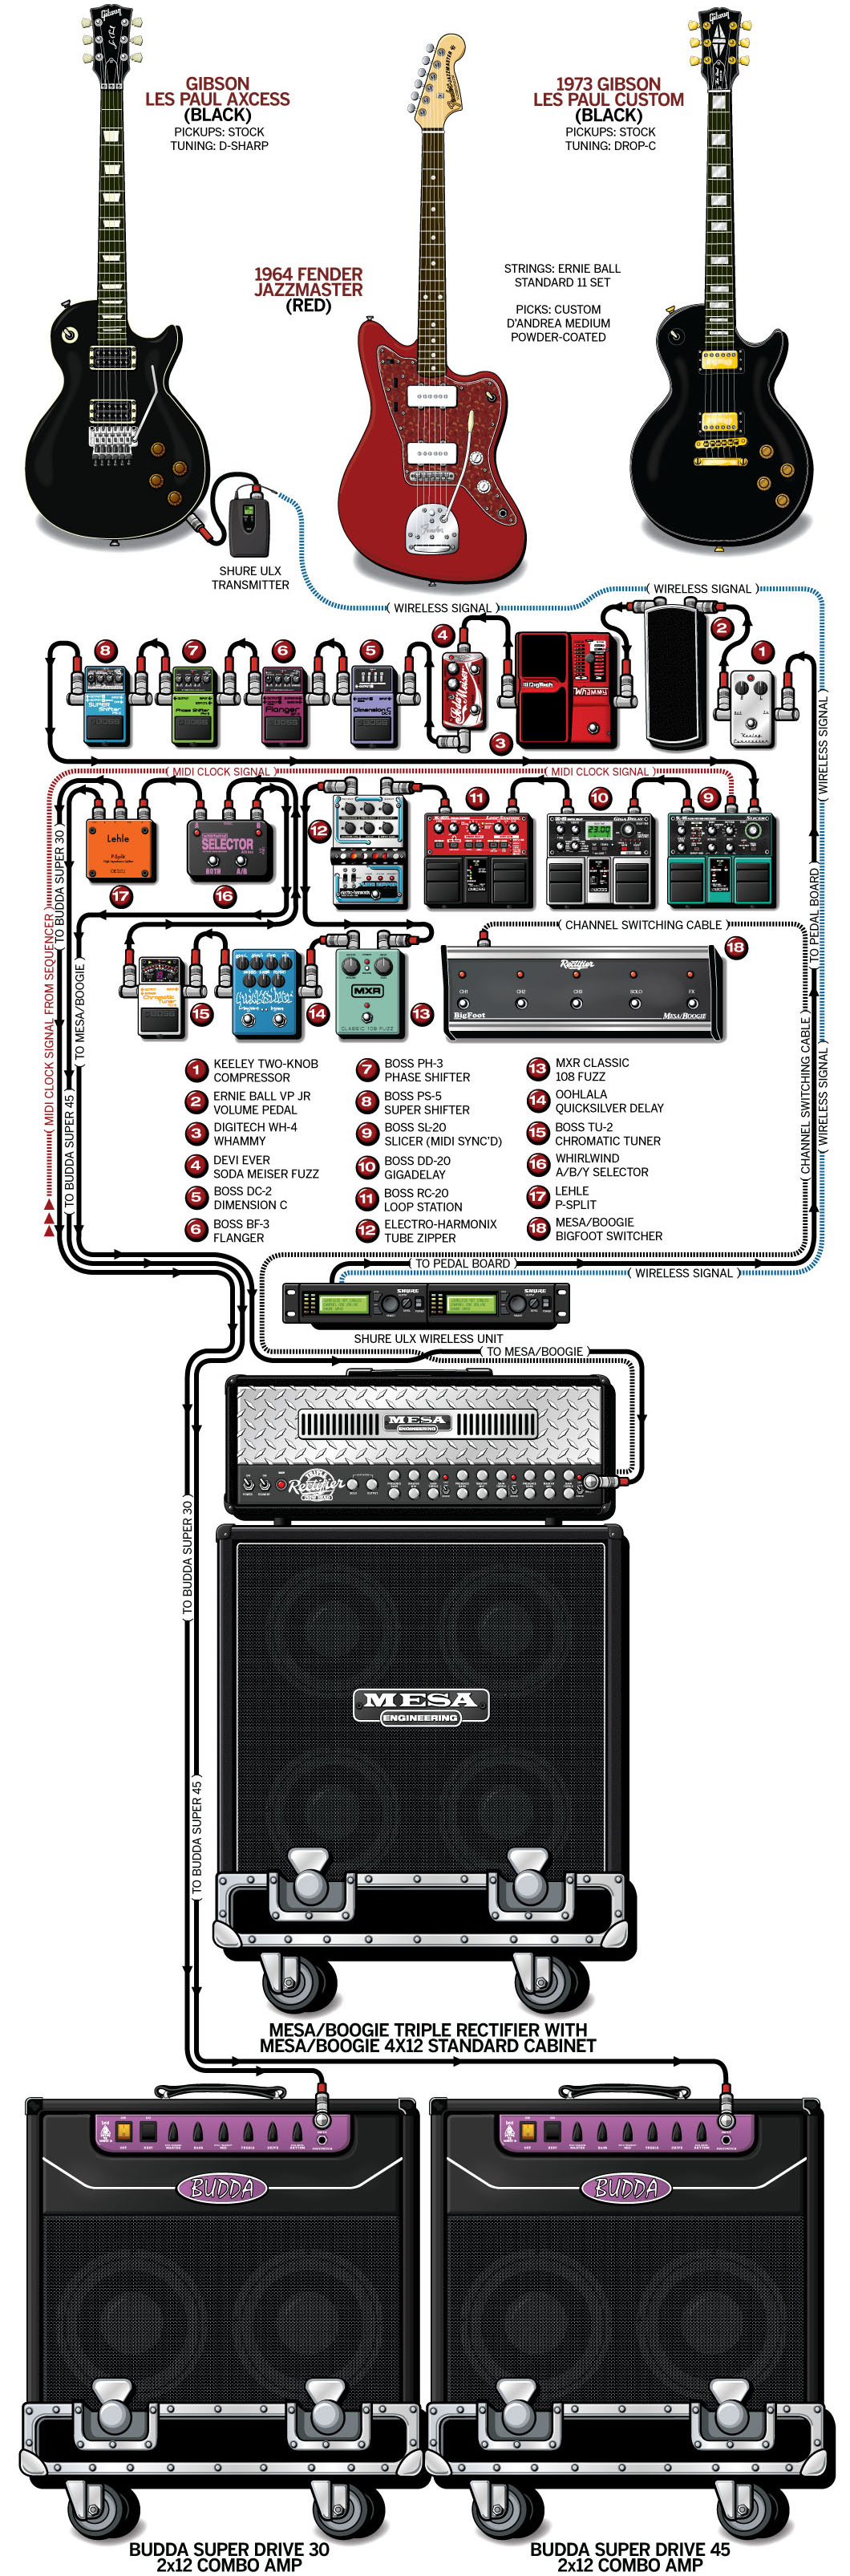 Tomo Milicevic Guitar Gear & Rig – Thirty Seconds to Mars – 2010